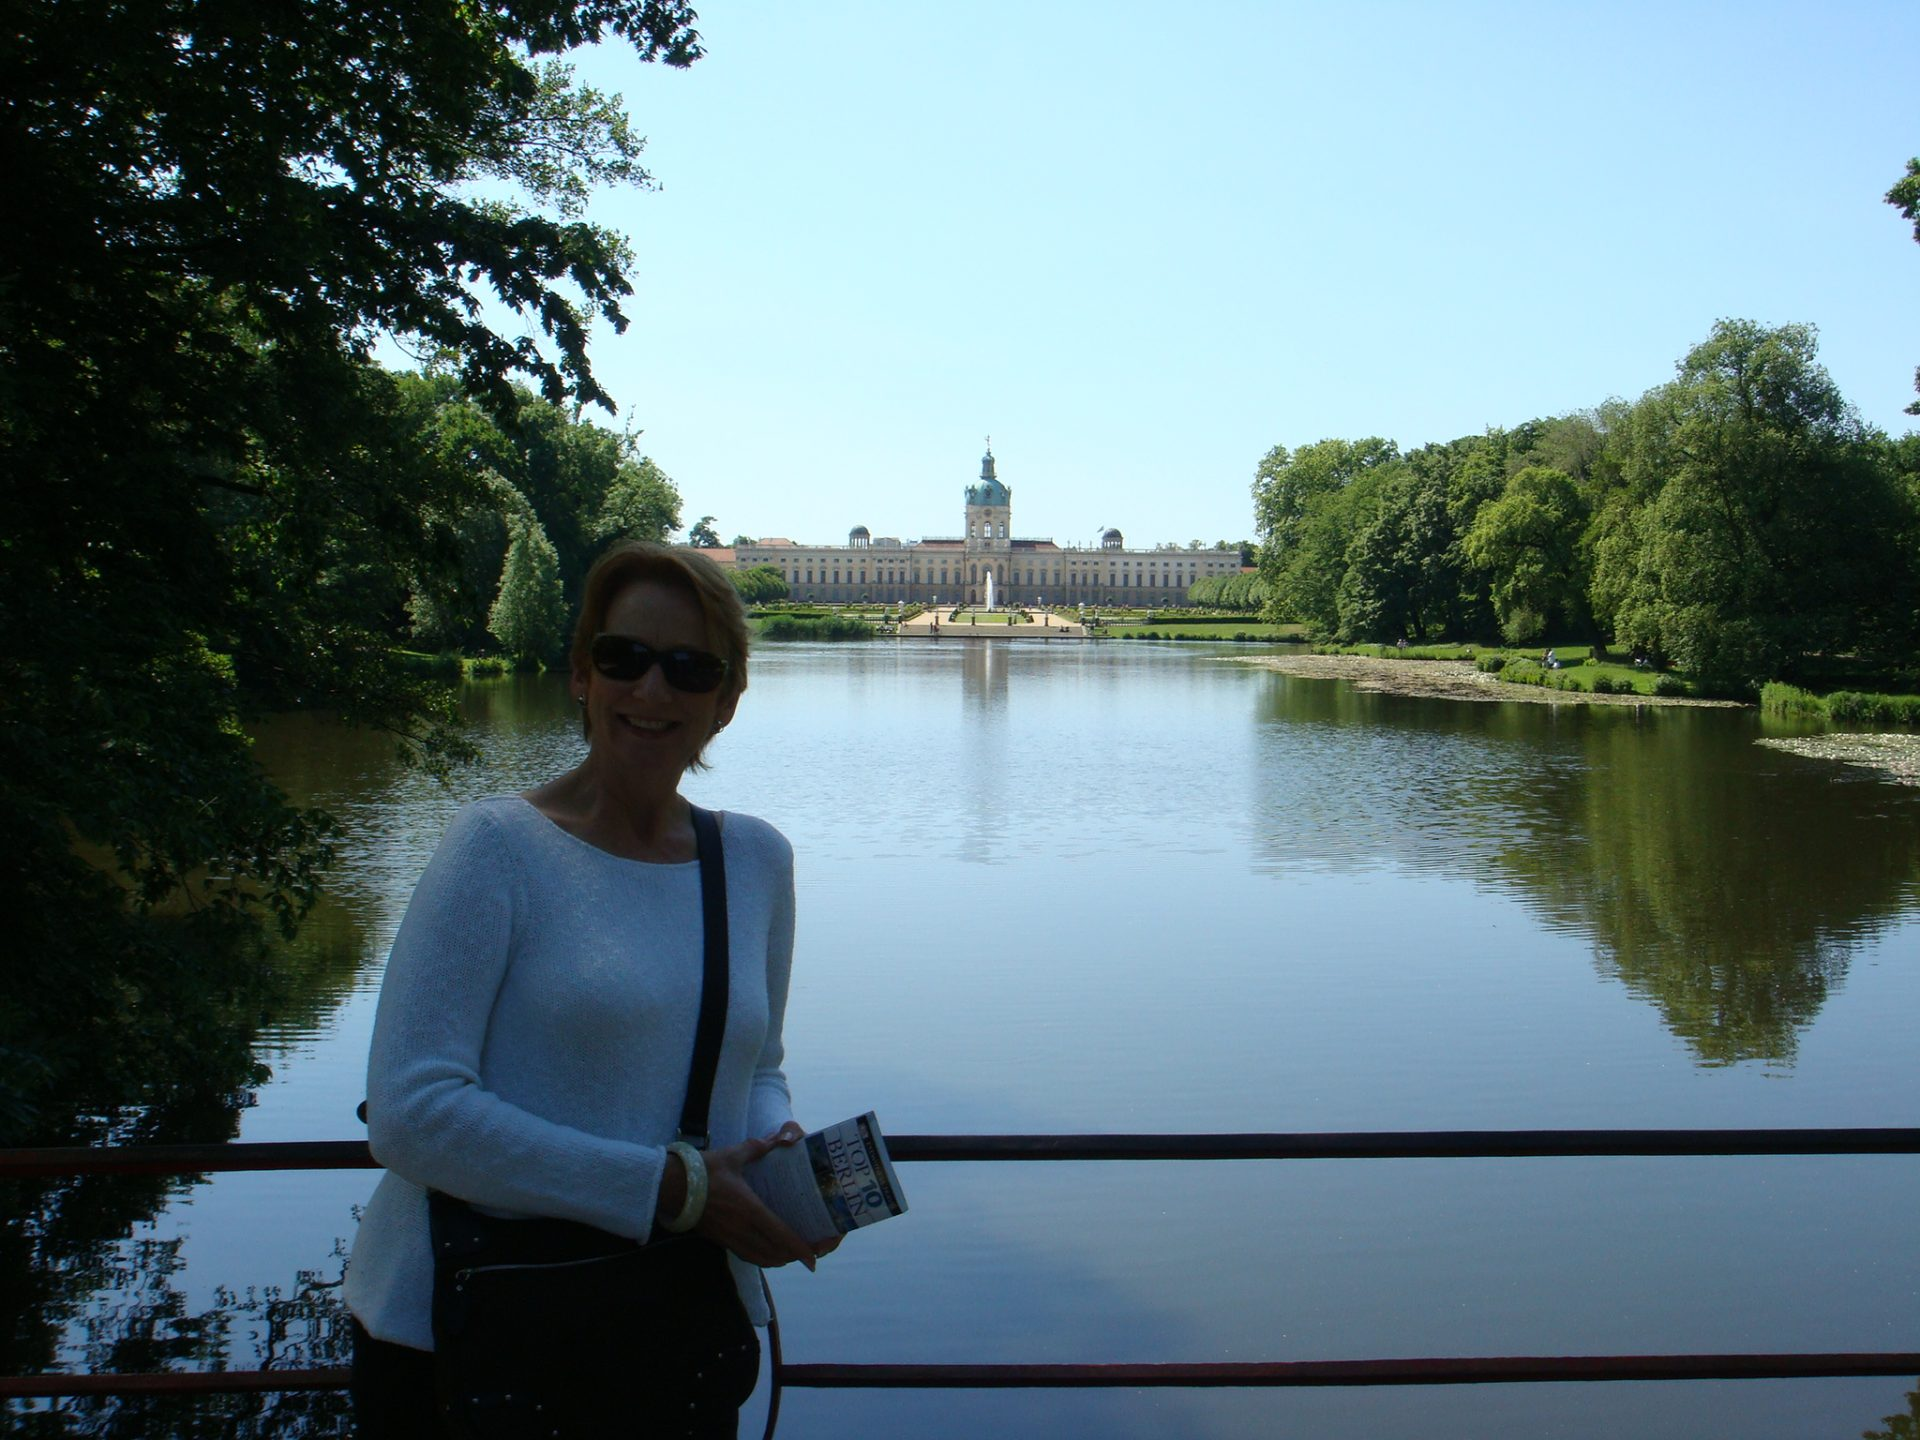 A quite moment at Schloss Charlottenburg, summer residence of the wife of Elector Friedrich III